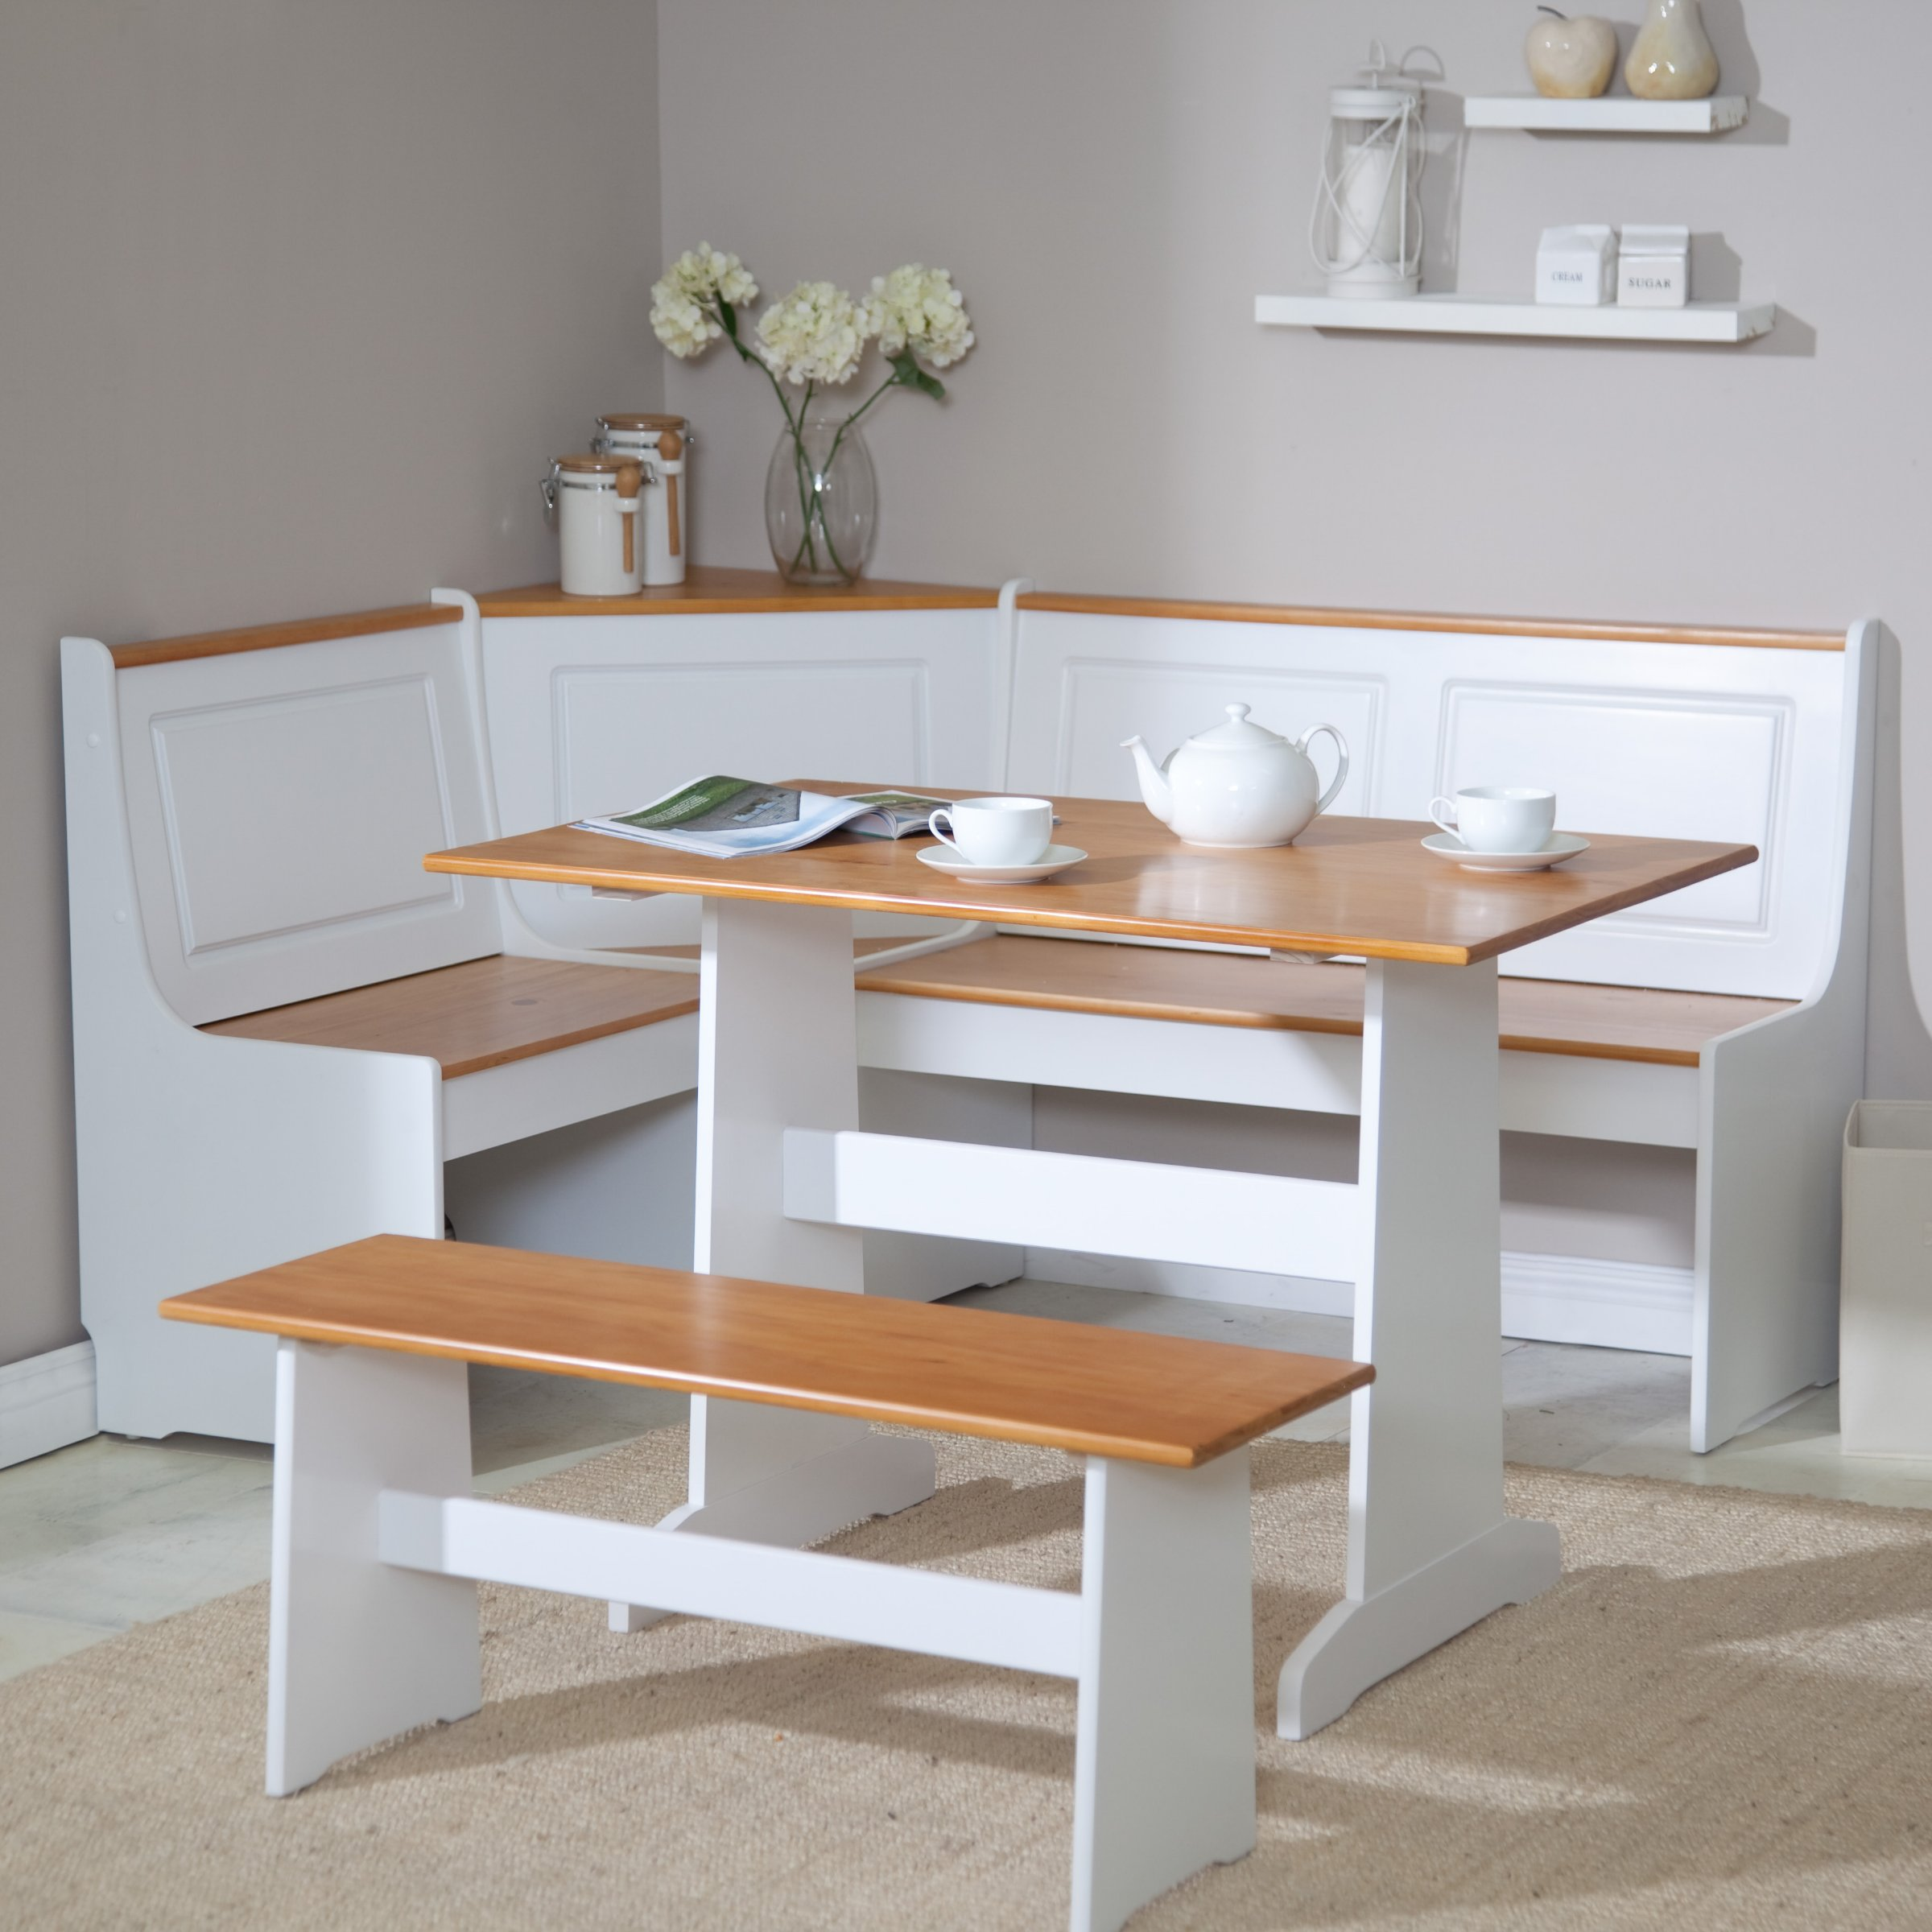 White Wooden Nook Dining Room Set With Bench And Table Cream Rug